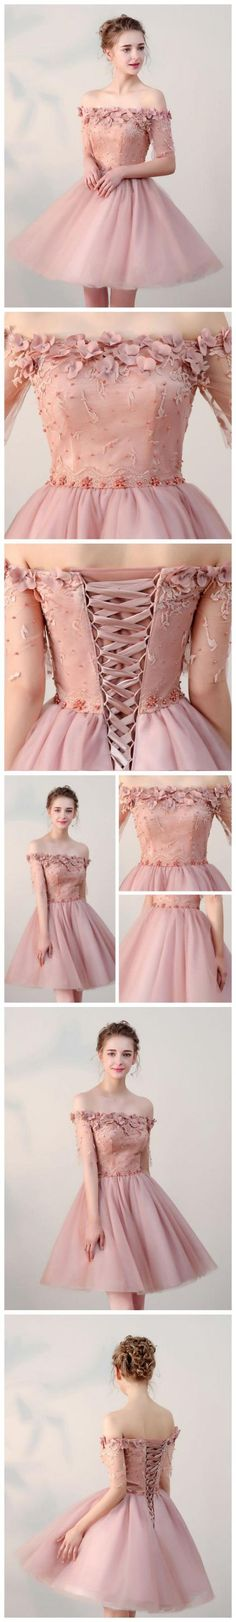 Chic A-Line Off-the-shoulder Sleeveless Short pink Homecoming Dress With Appliques M4780 Blue Homecoming Dresses, Grad Dresses, Cheap Prom Dresses, Evening Dresses, Short Dresses, Quinceanera Dresses, Dresses Dresses, Dresses Online, Dress Outfits